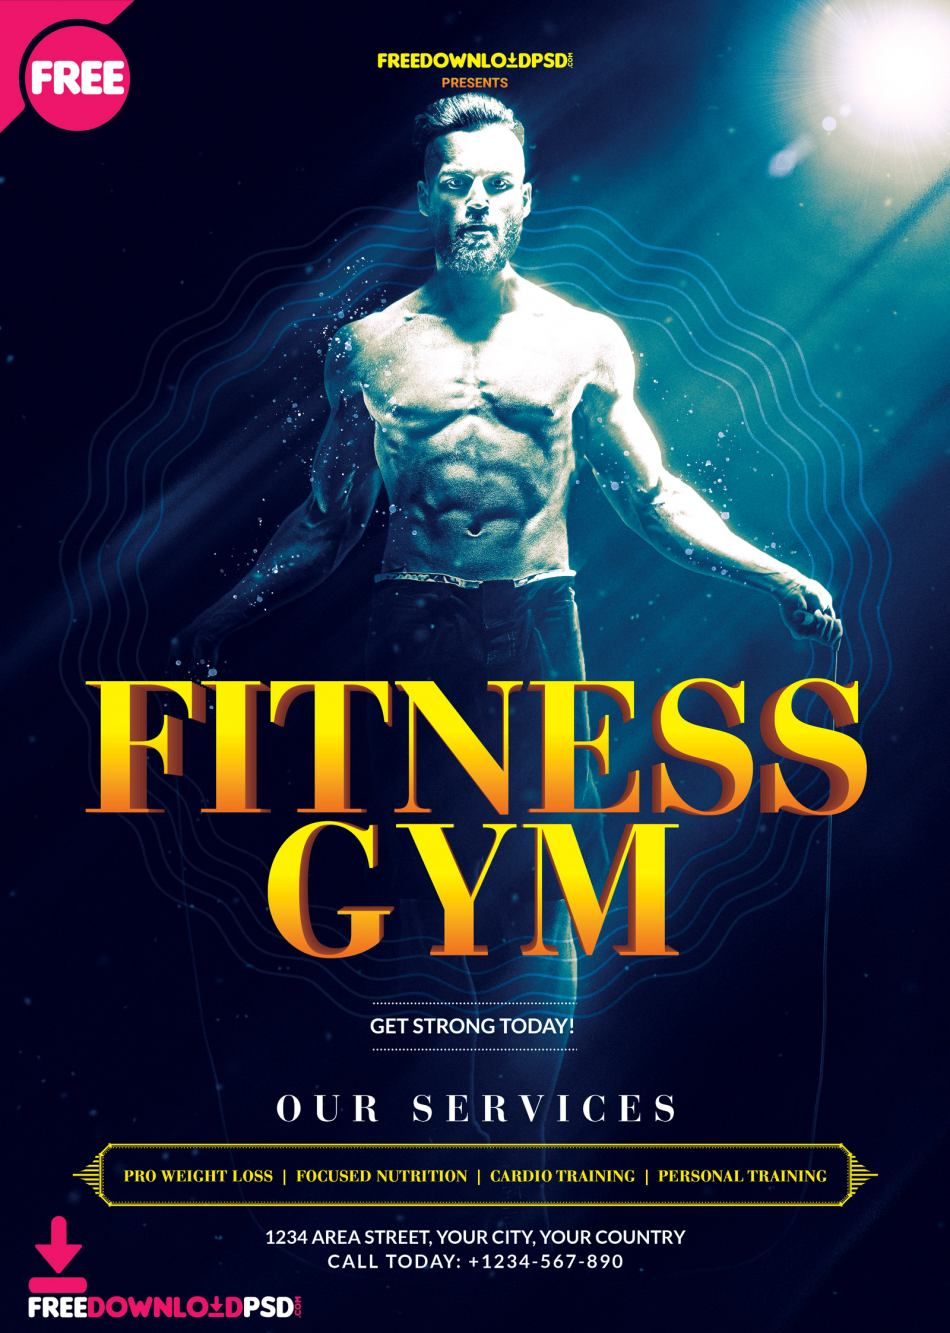 Fitness Gym Free Flyer PSD Template